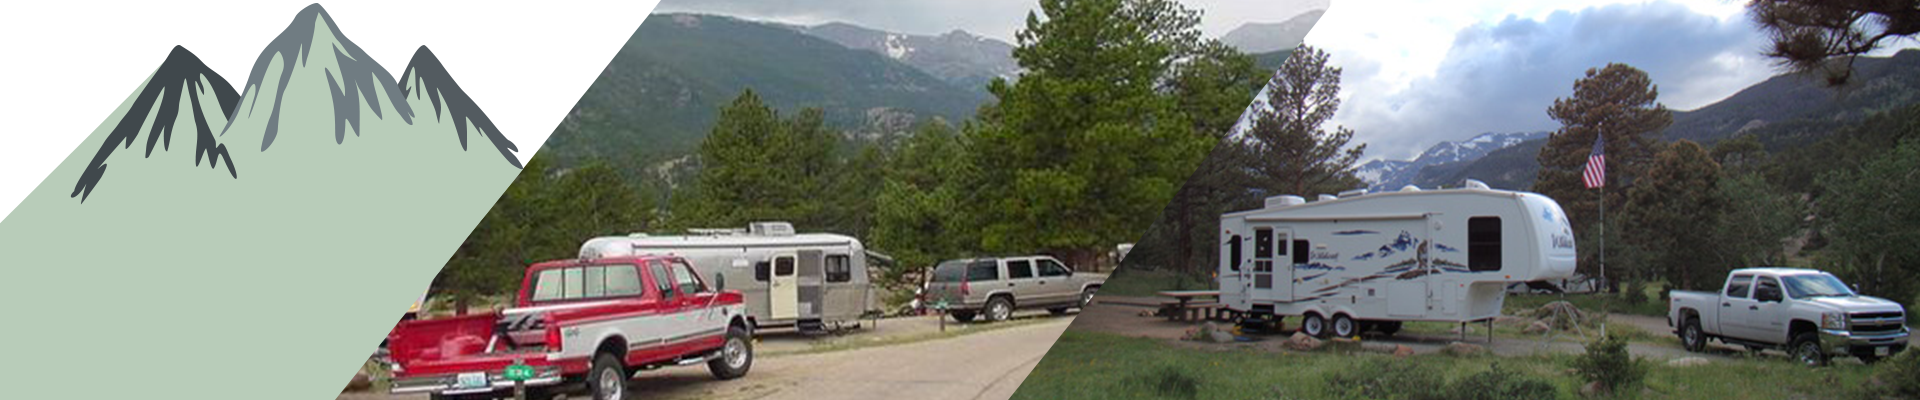 Moraine Park Campground in the Rocky Mountain National Park.